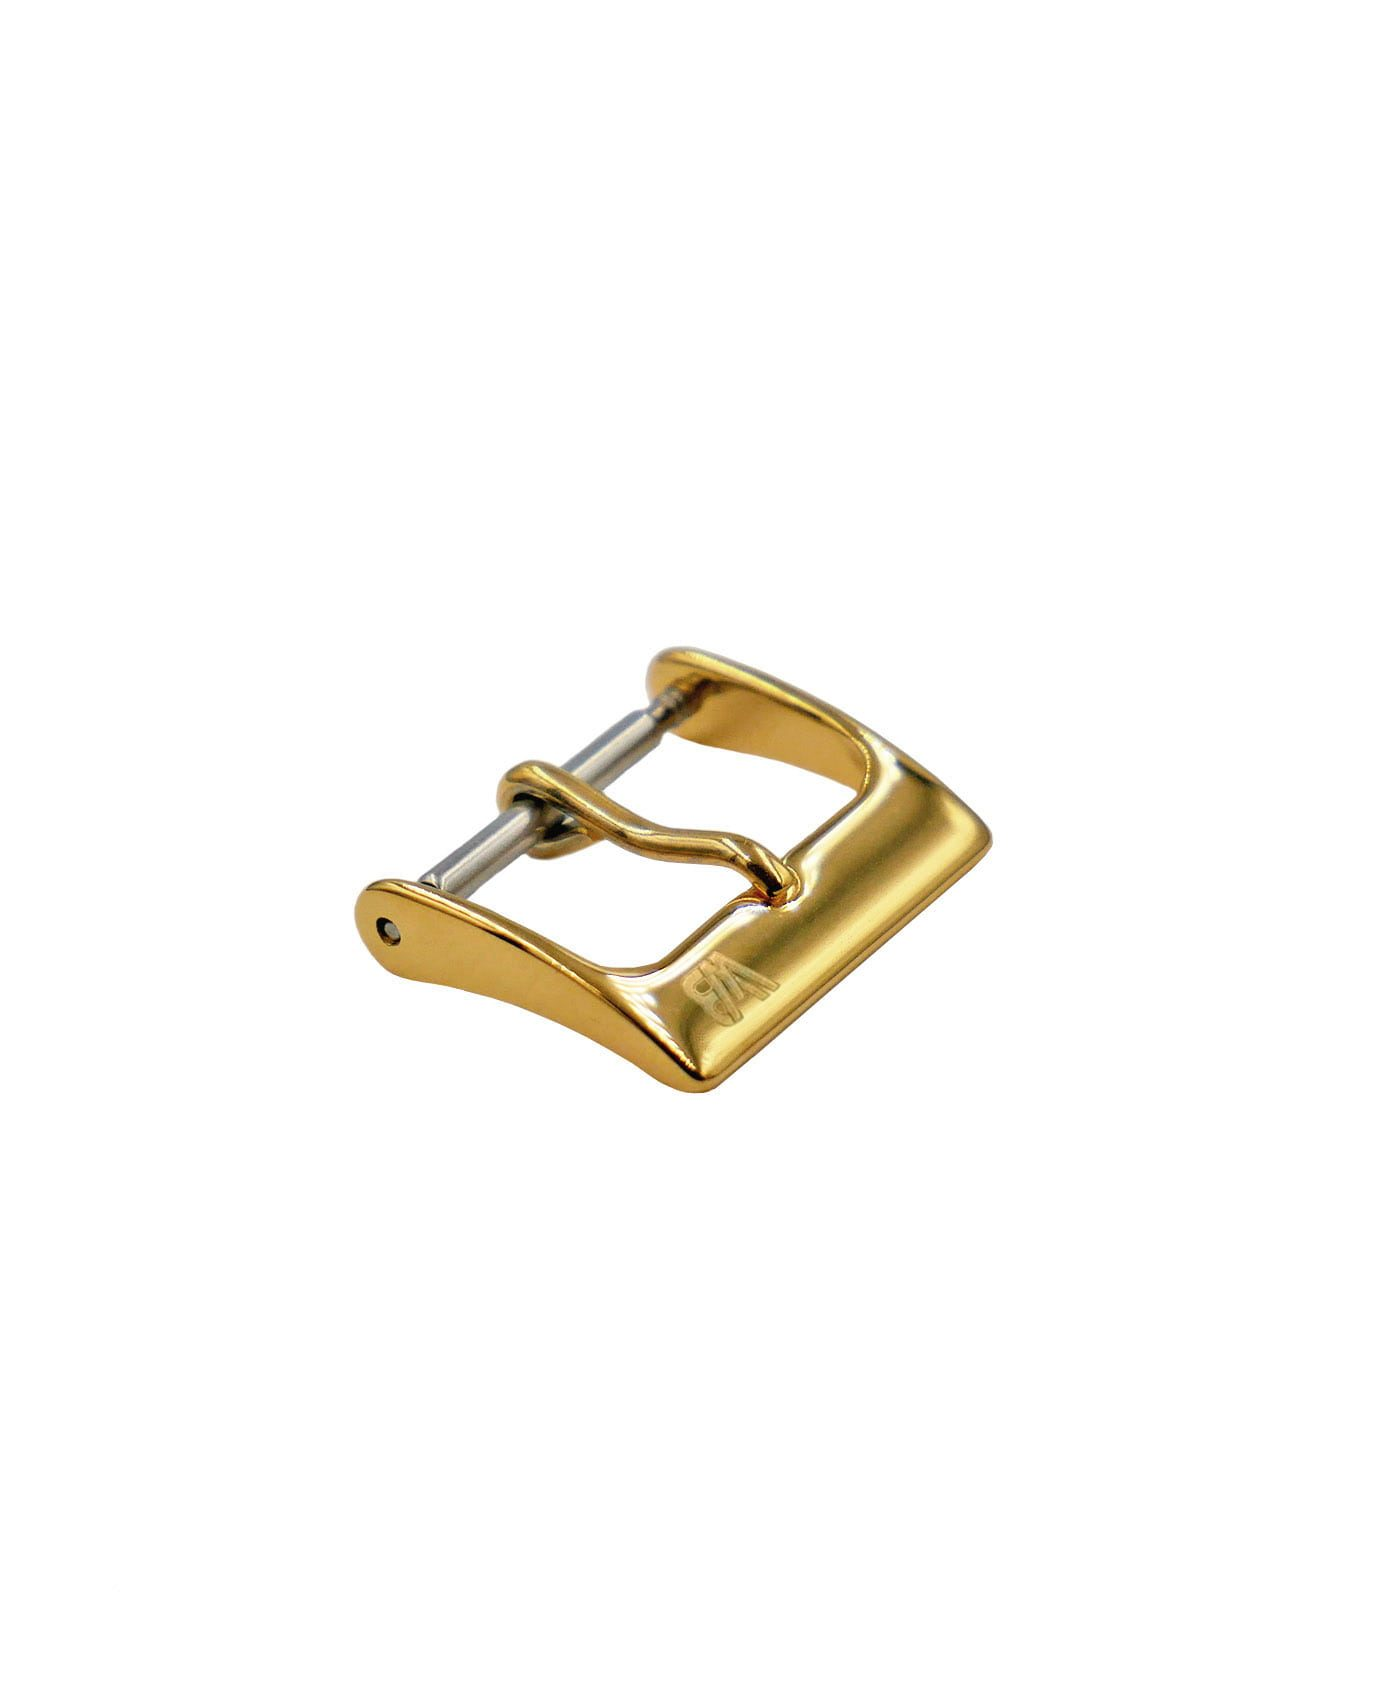 Gold Buckle for watch leather strap Watchbandit